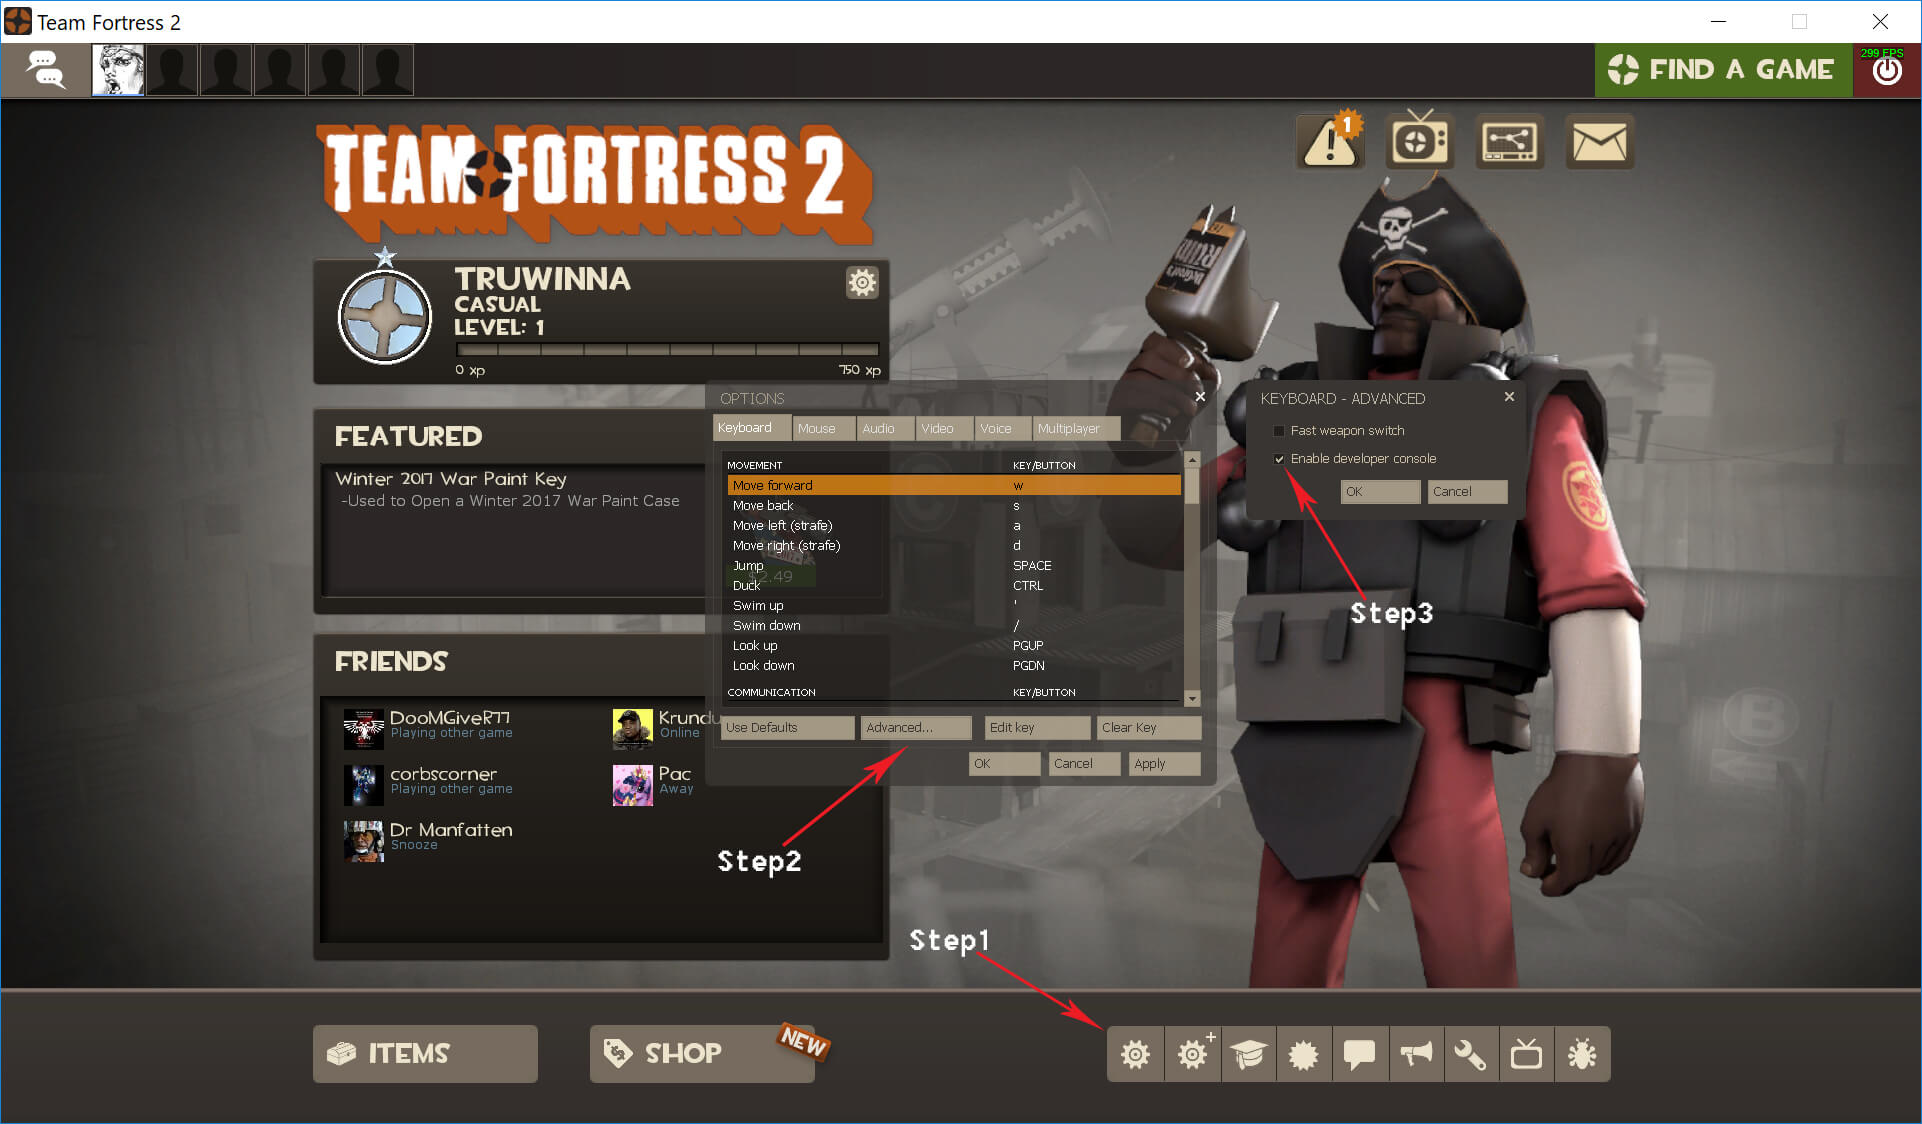 Team Fortress 2: How to connect via IP - GameserverKings